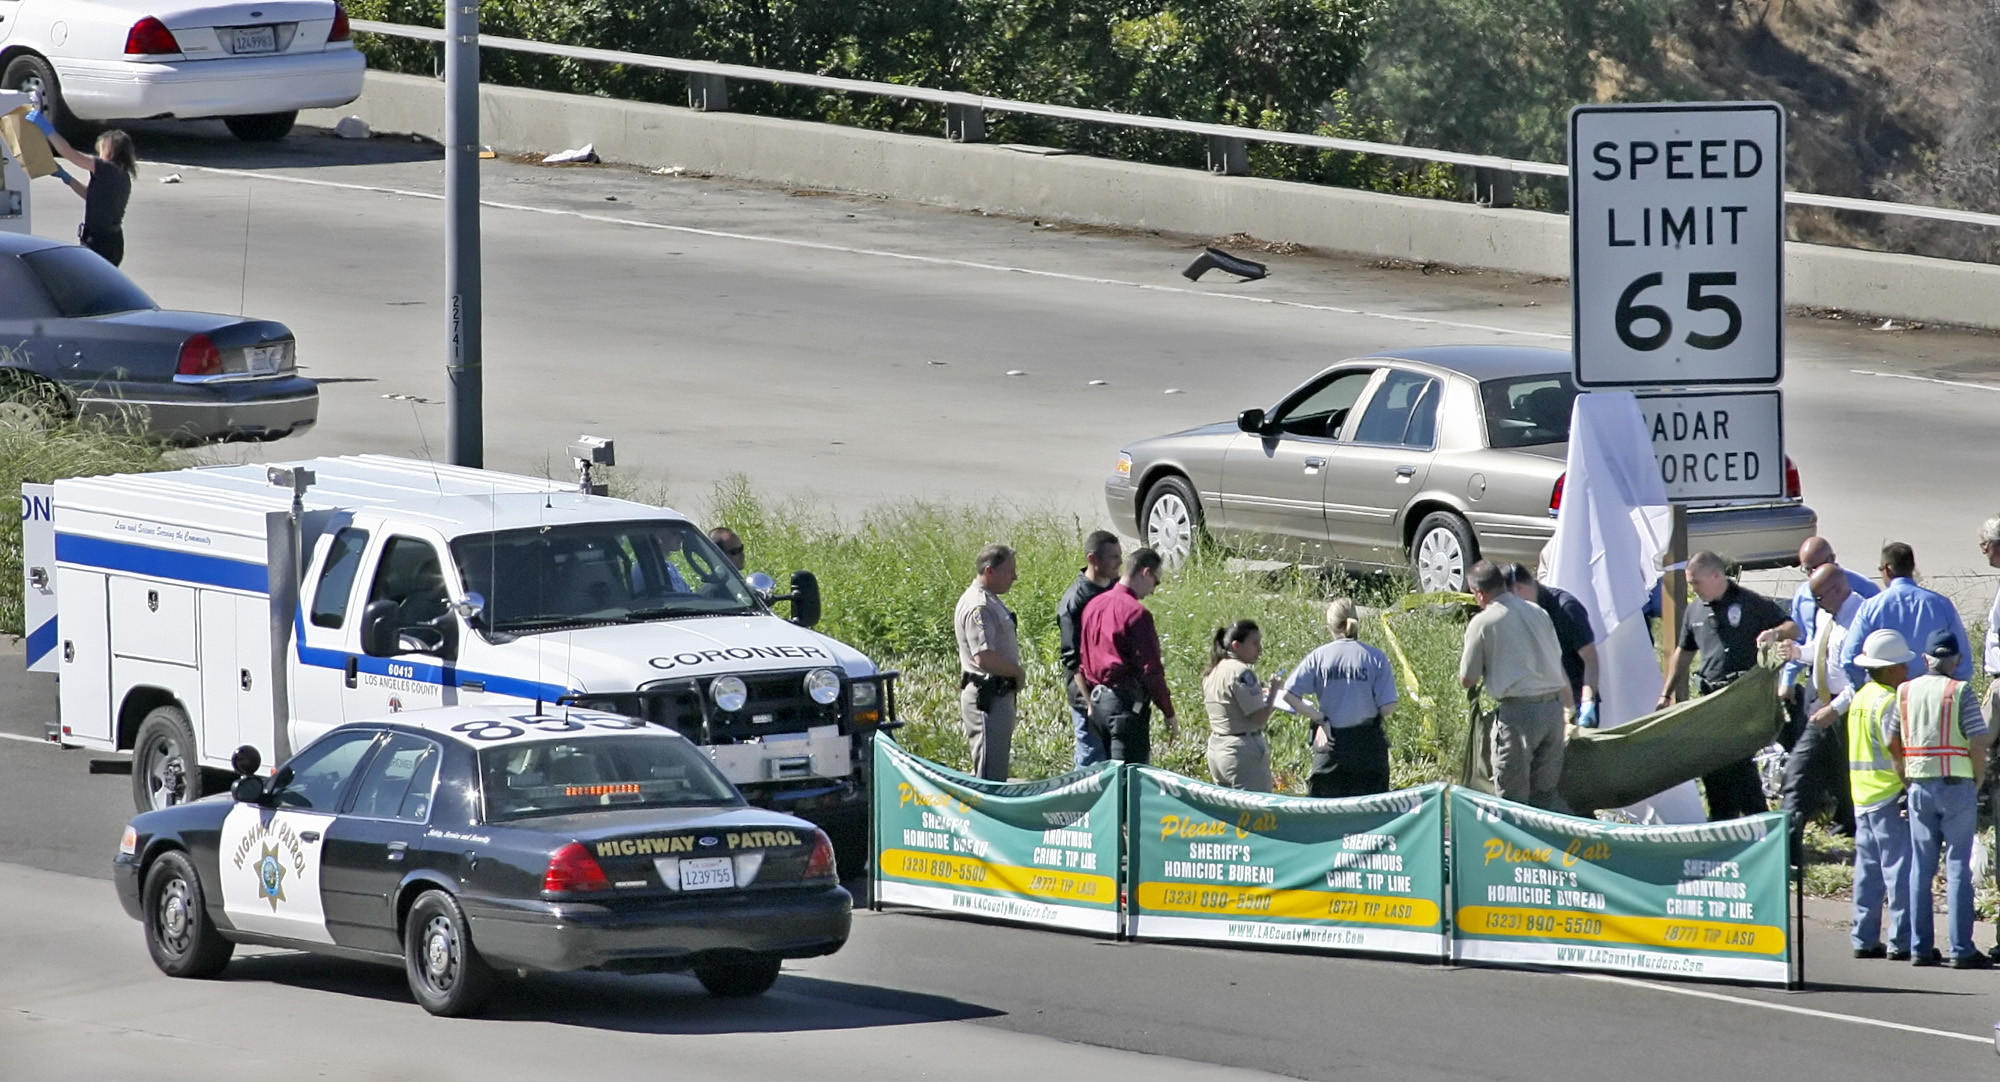 Two men were convicted this week in the 2008 murder of a Mongols Motorcycle Club member gunned down while riding on the Glendale (2) Freeway in 2008. Pictured is the L.A. County Coroner's personnel moving the victim's body on October 8, 2008.